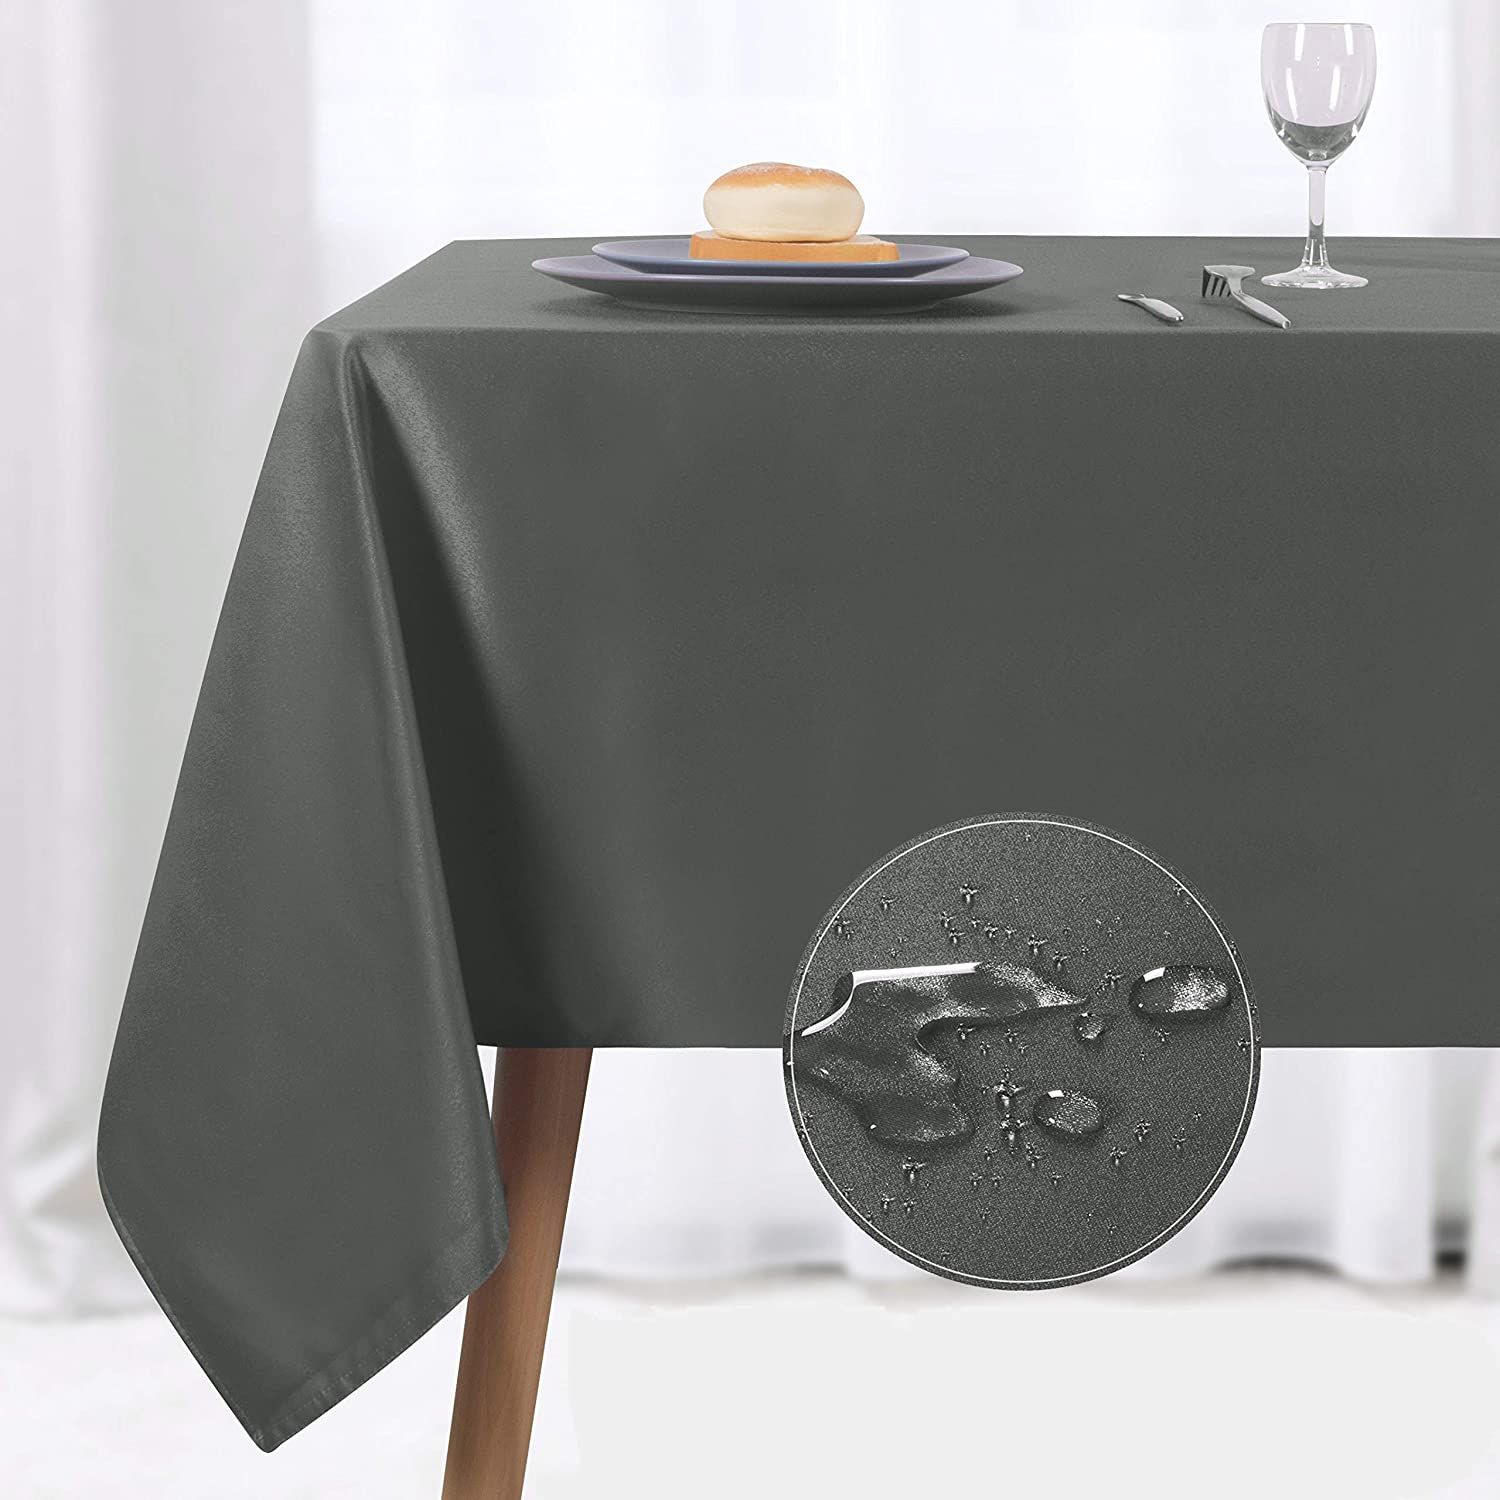 NLMUVW Rectangle Table Cloth, Waterproof Oblong Tablecloth, Microfiber Fabric 210 GSM Table Cover for Party Picnic Outdoor and Indoor Use (60 x 140 Inch, Grey)